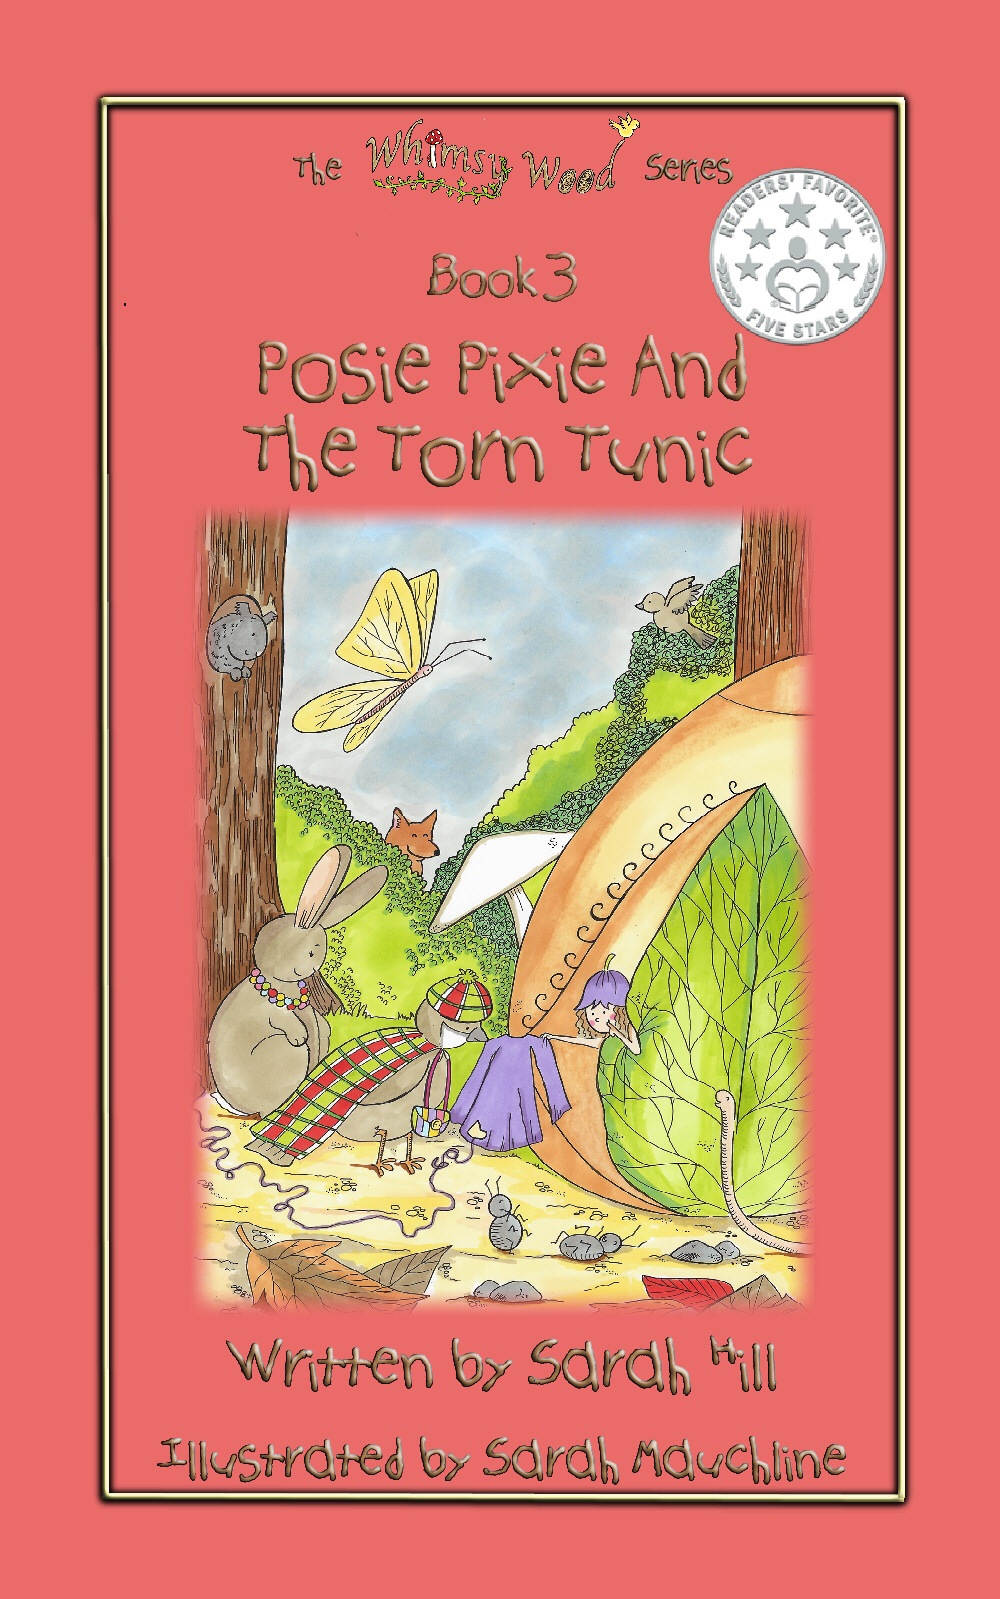 The new front cover for 'Posie Pixie And The Torn Tunic' with its 5 star award!